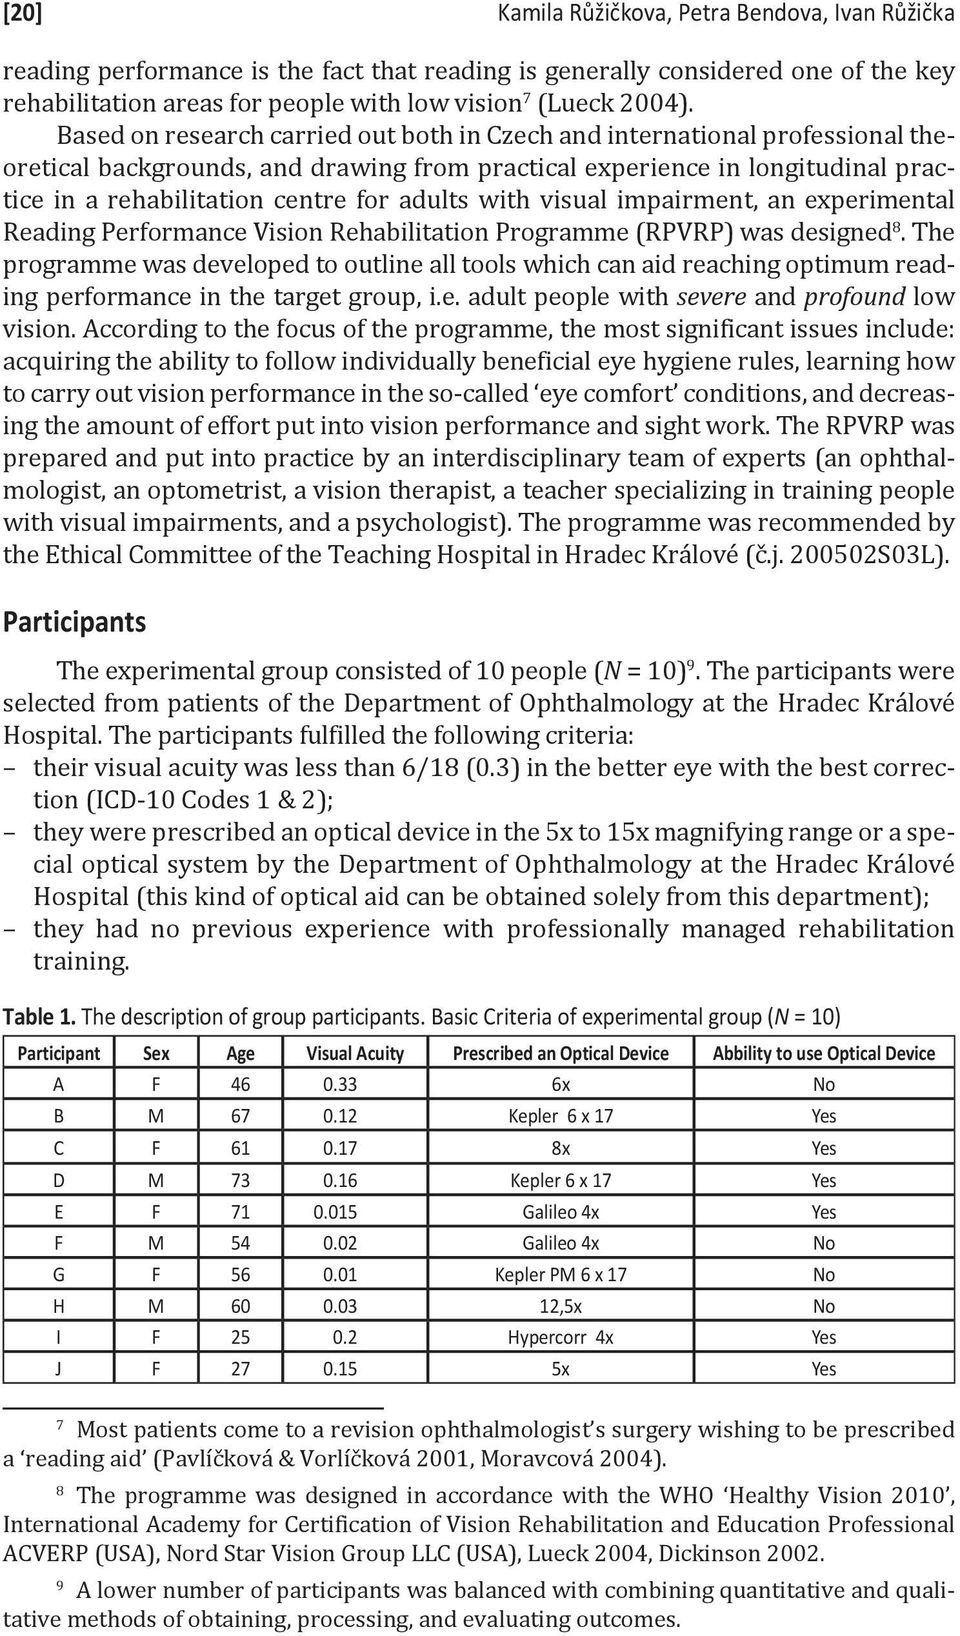 adults with visual impairment, an experimental Reading Performance Vision Rehabilitation Programme (RPVRP) was designed 8.